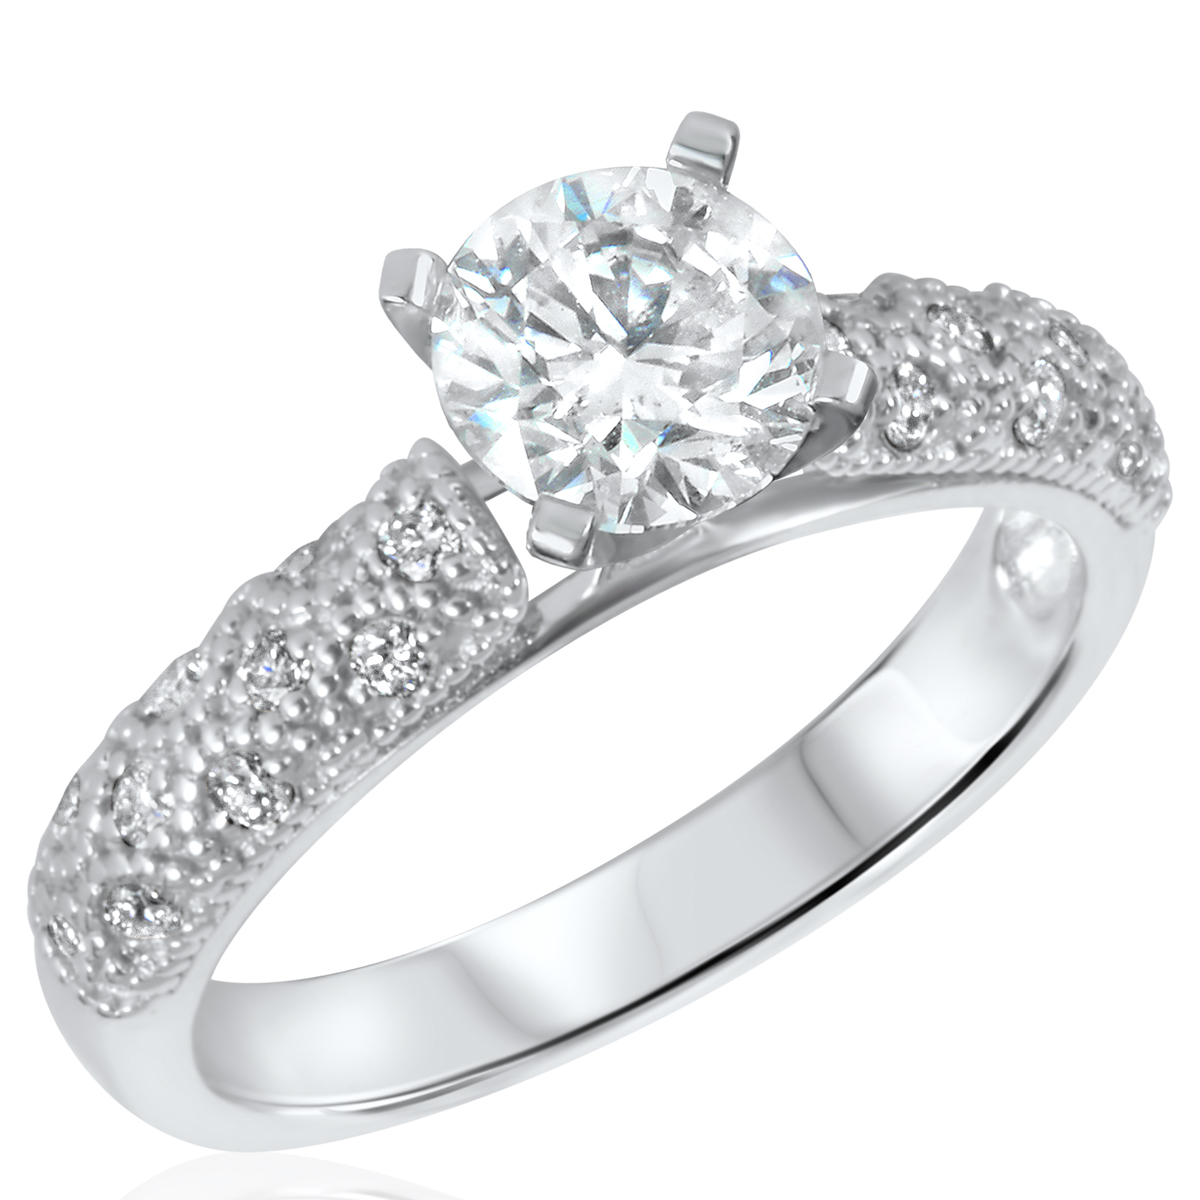 NEW Create Your Own Diamond Engagement Ring Wedding Ideas